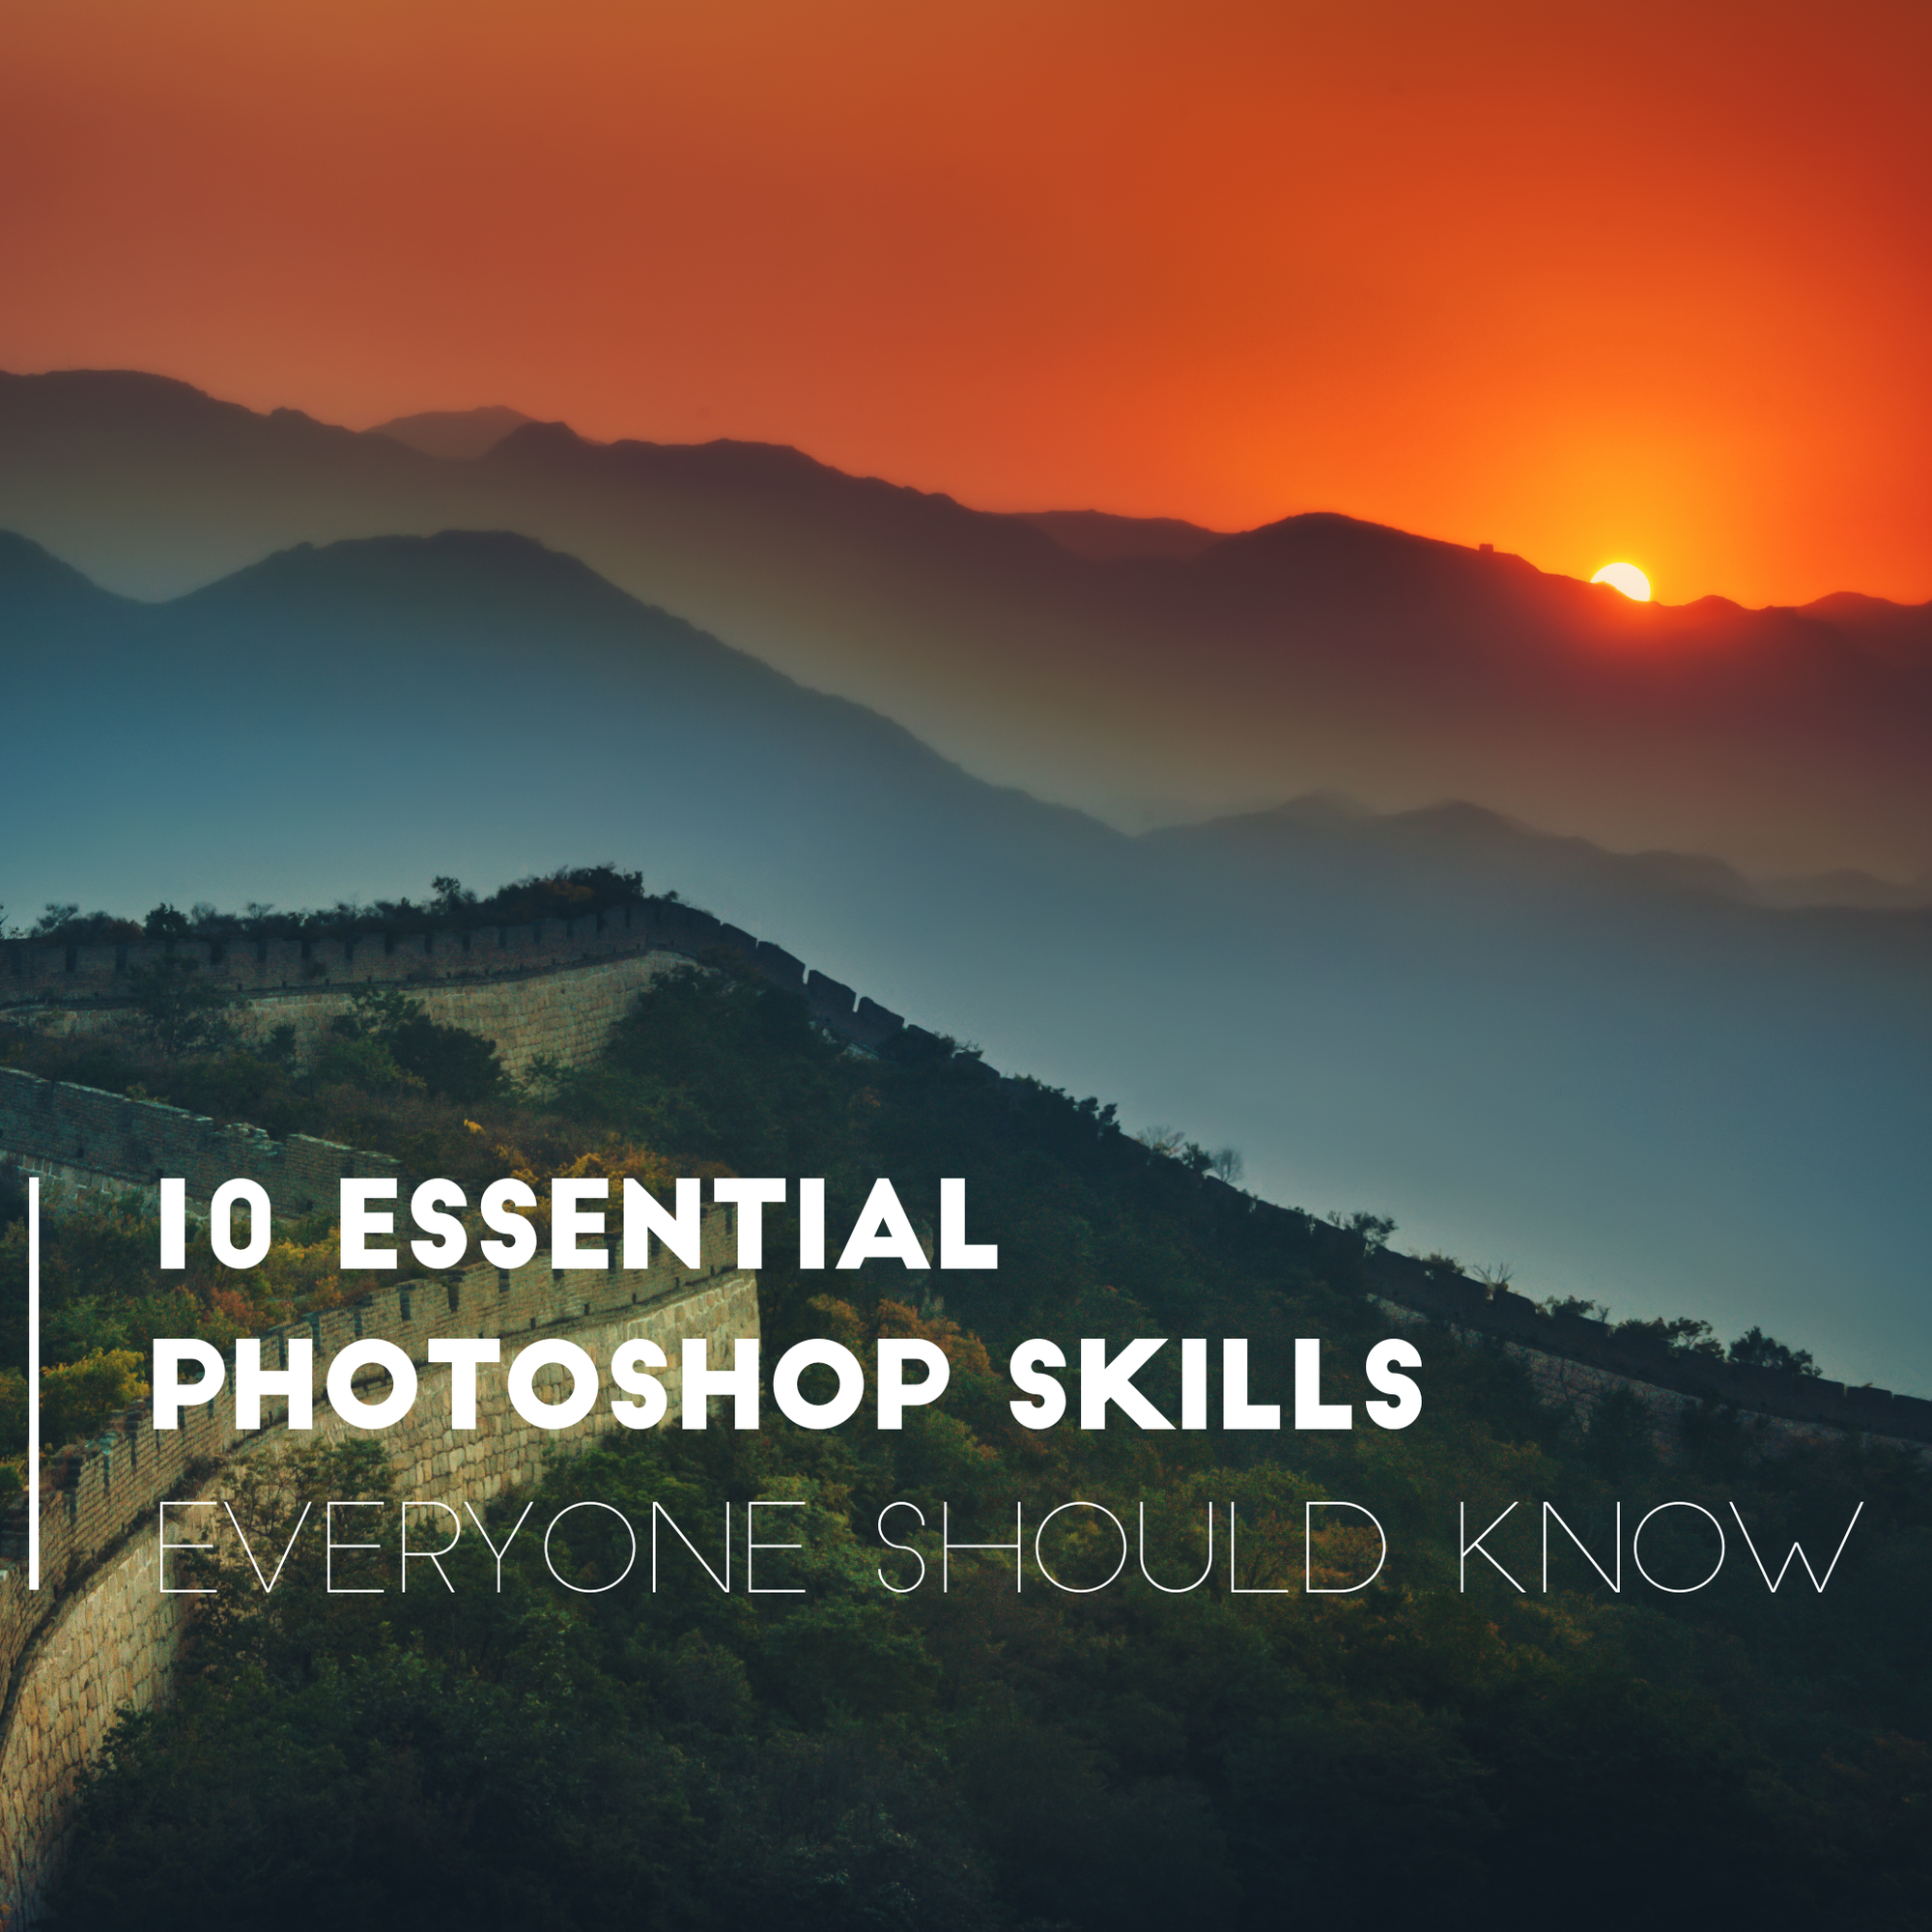 10 Essential Photoshop Skills Everyone Should Know